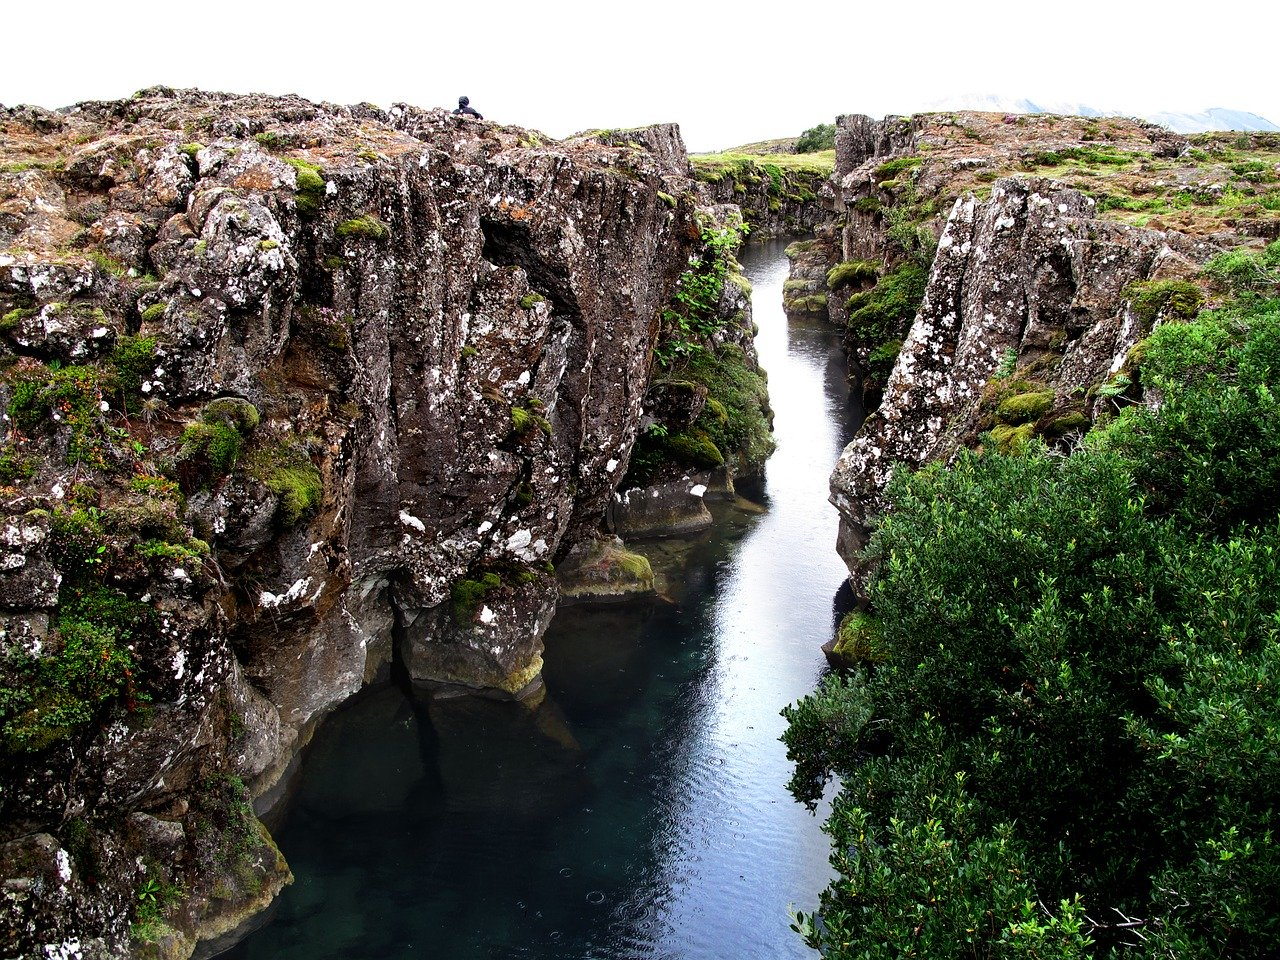 Thingvellir - tectonic plates